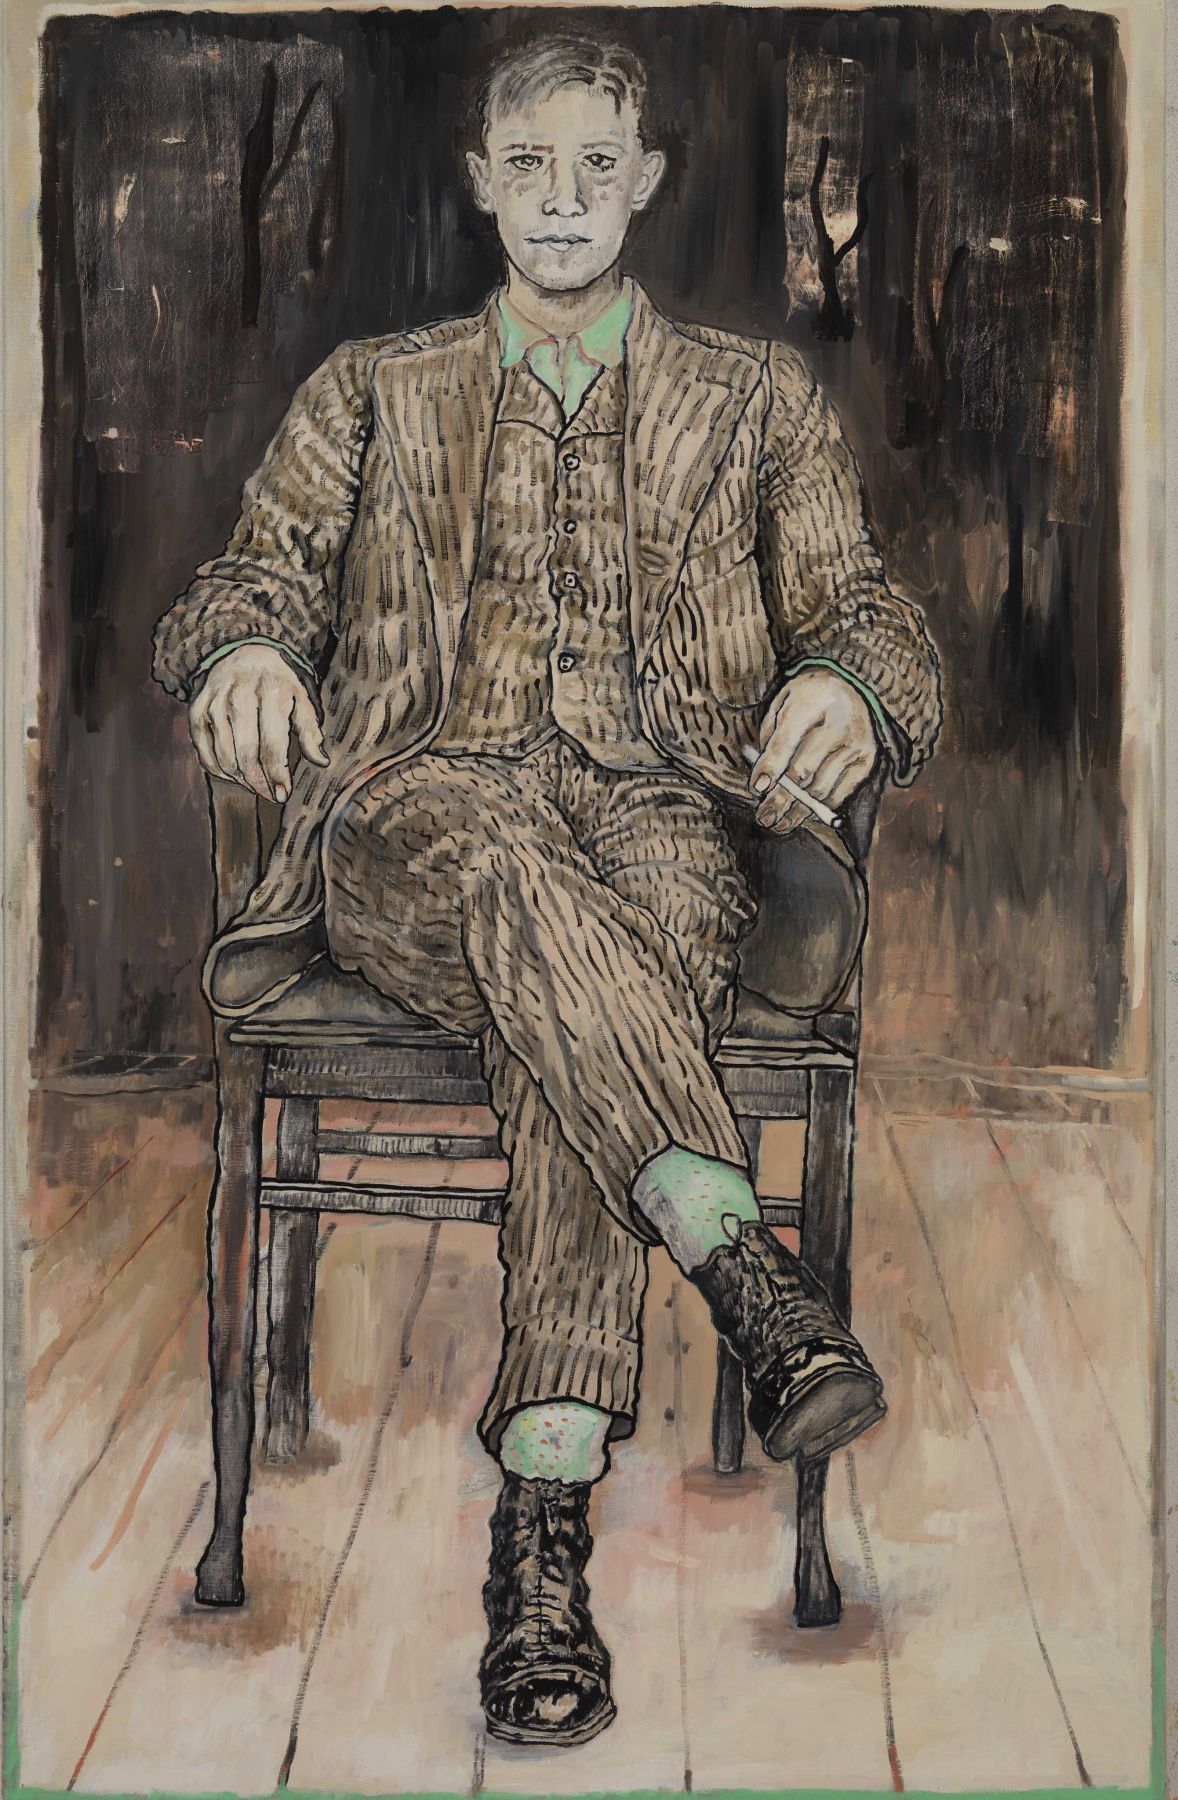 an oil painting of a man in a suit seated in a chair by contemporary artist Hannah van Bart